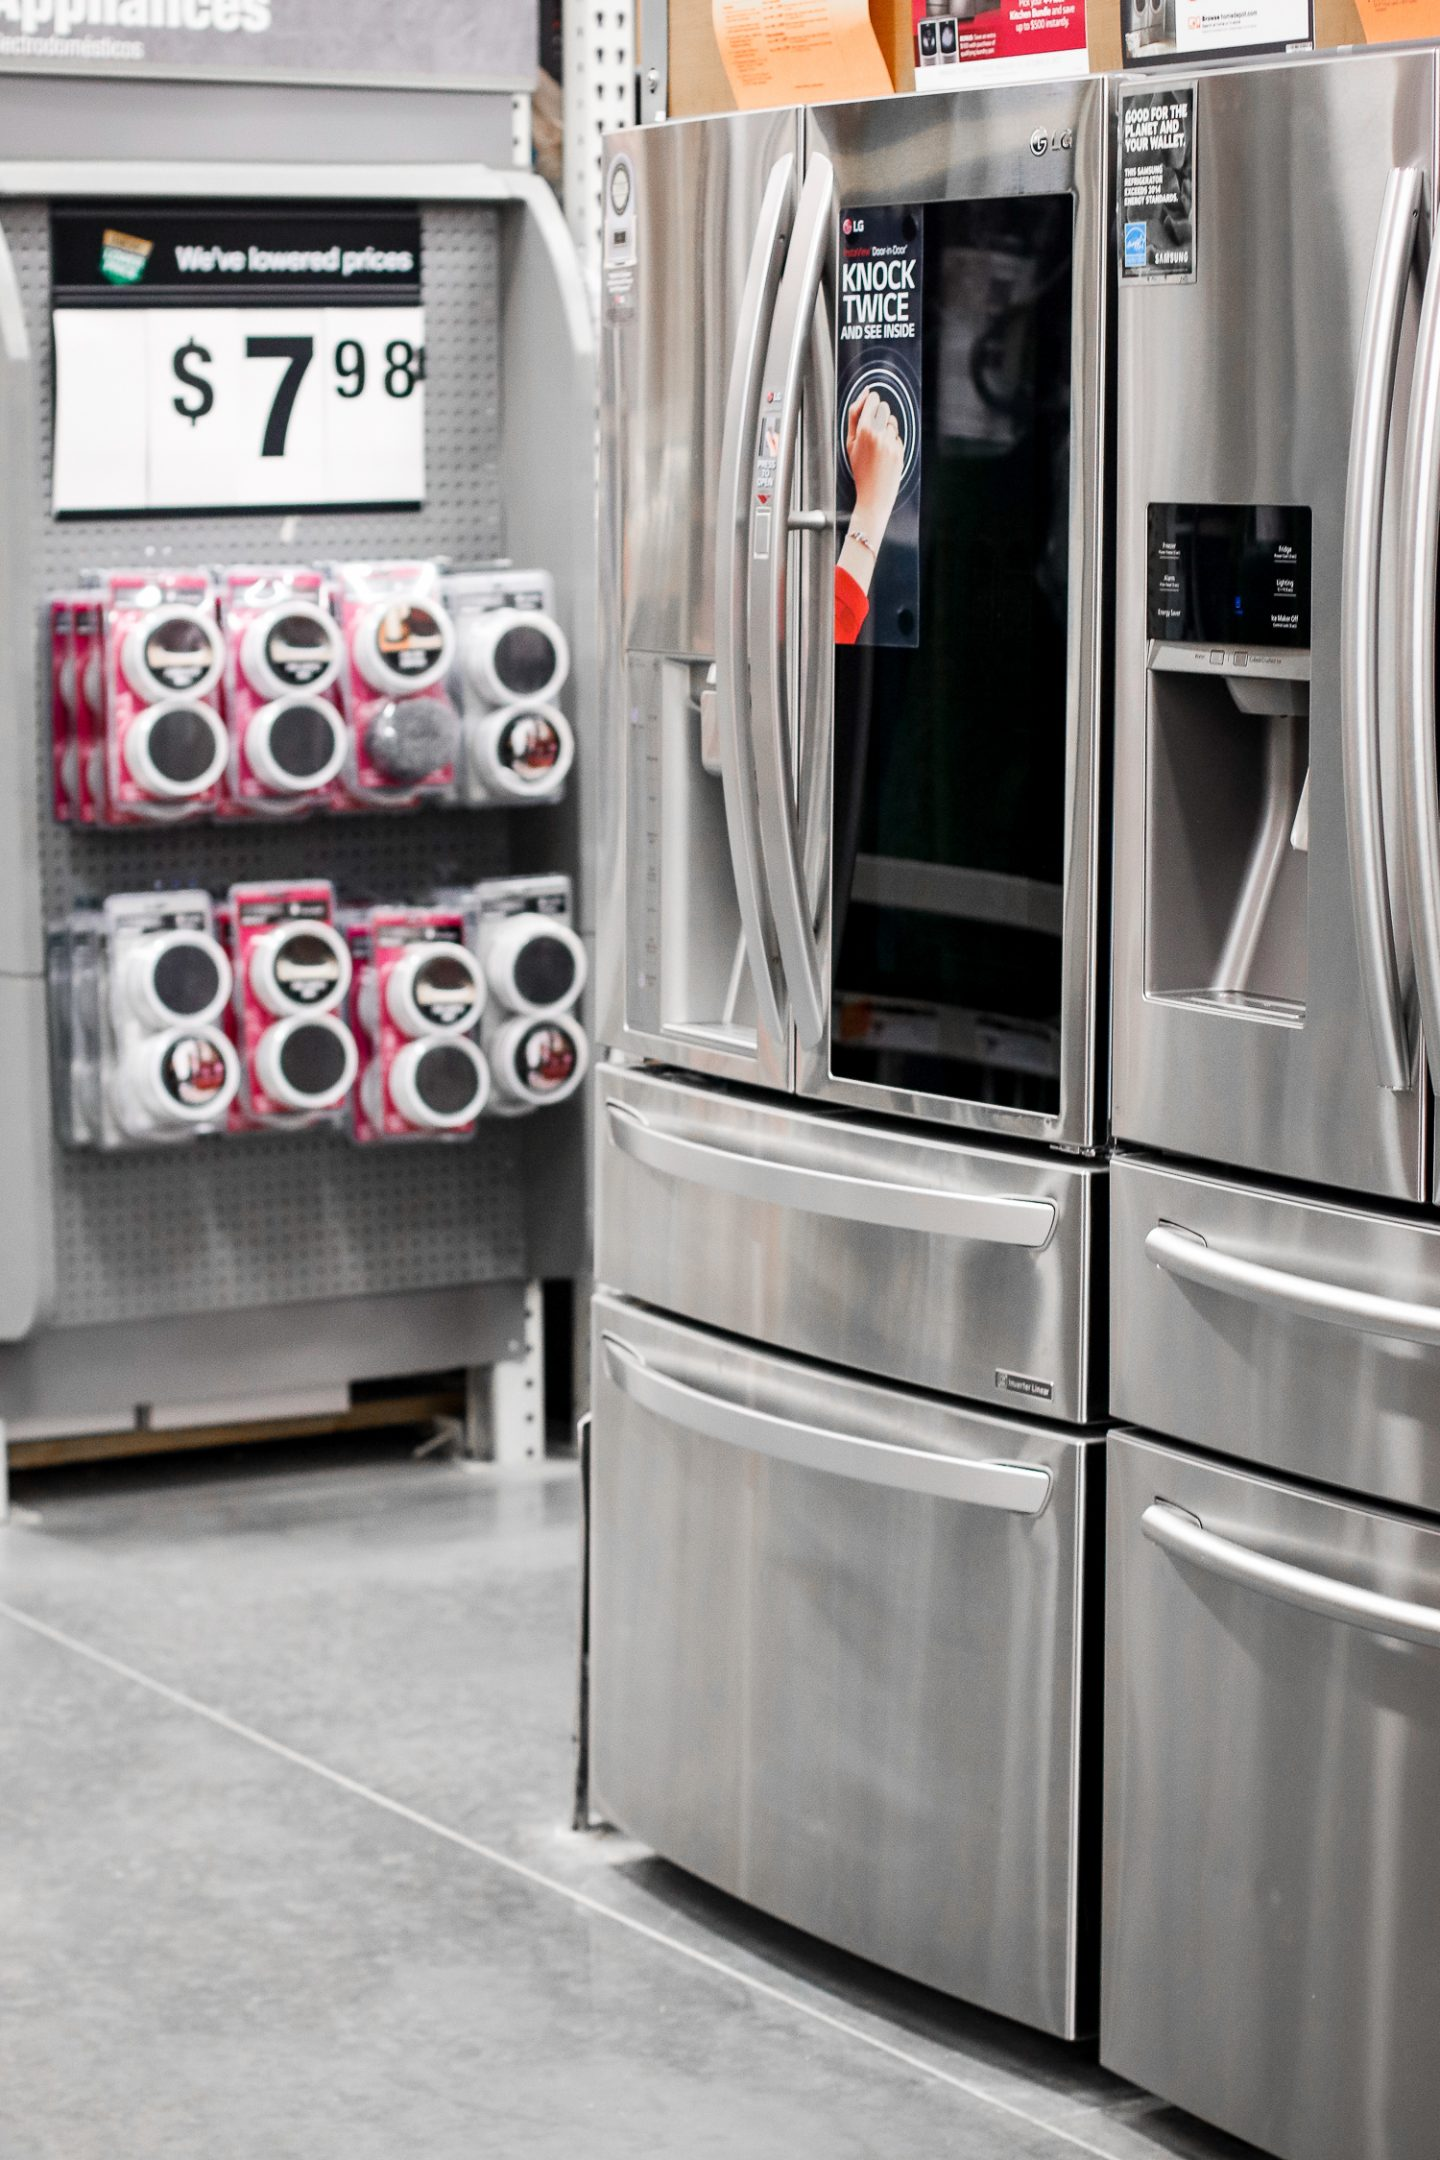 Home Depot appliance make the holiday season fast and easy